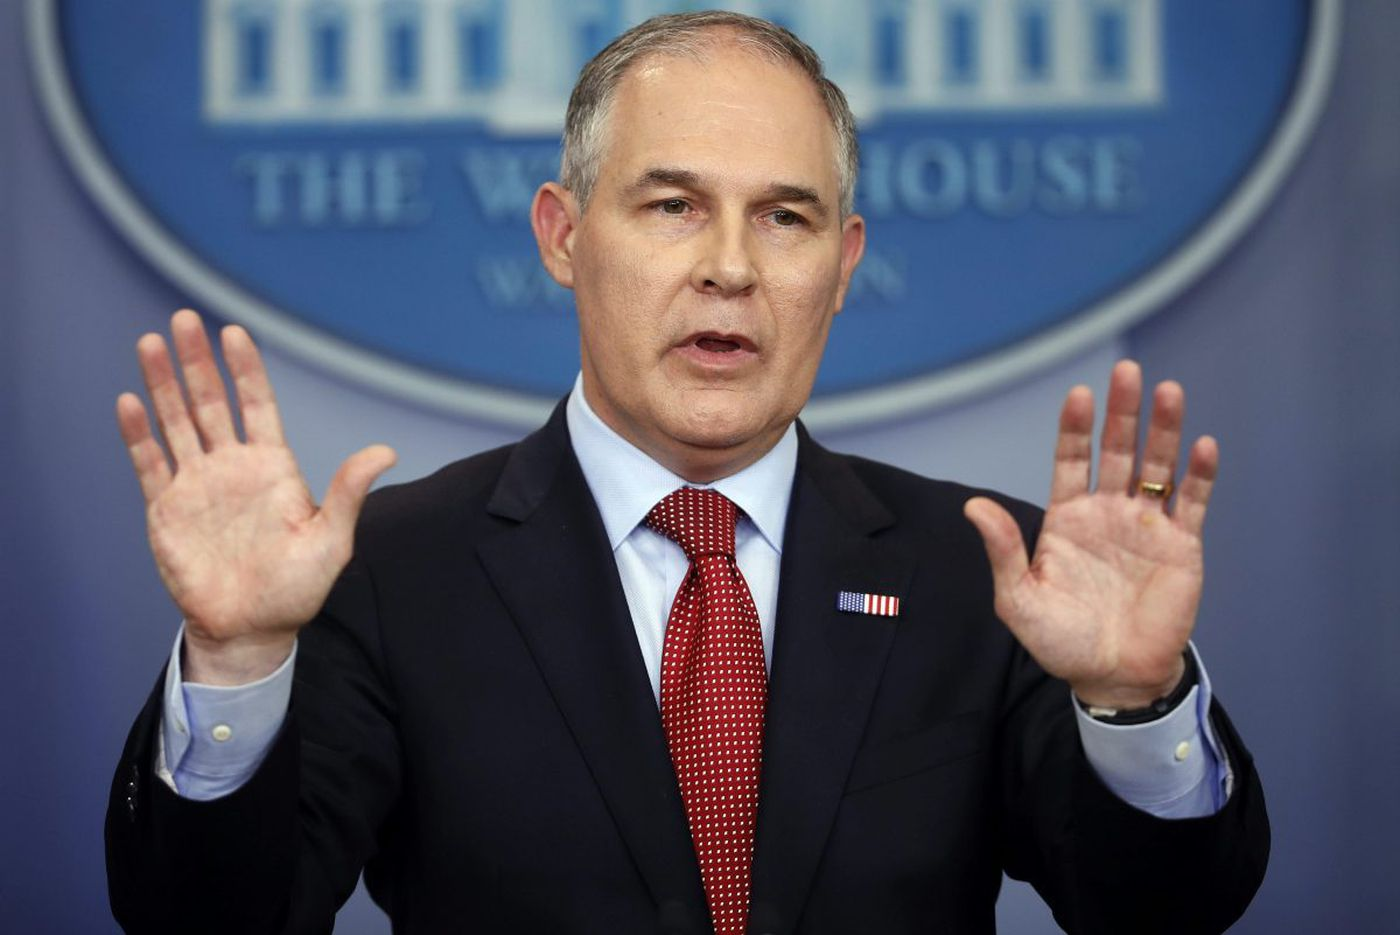 Scott Pruitt's $43,000 soundproof phone booth violated spending laws, federal watchdog finds